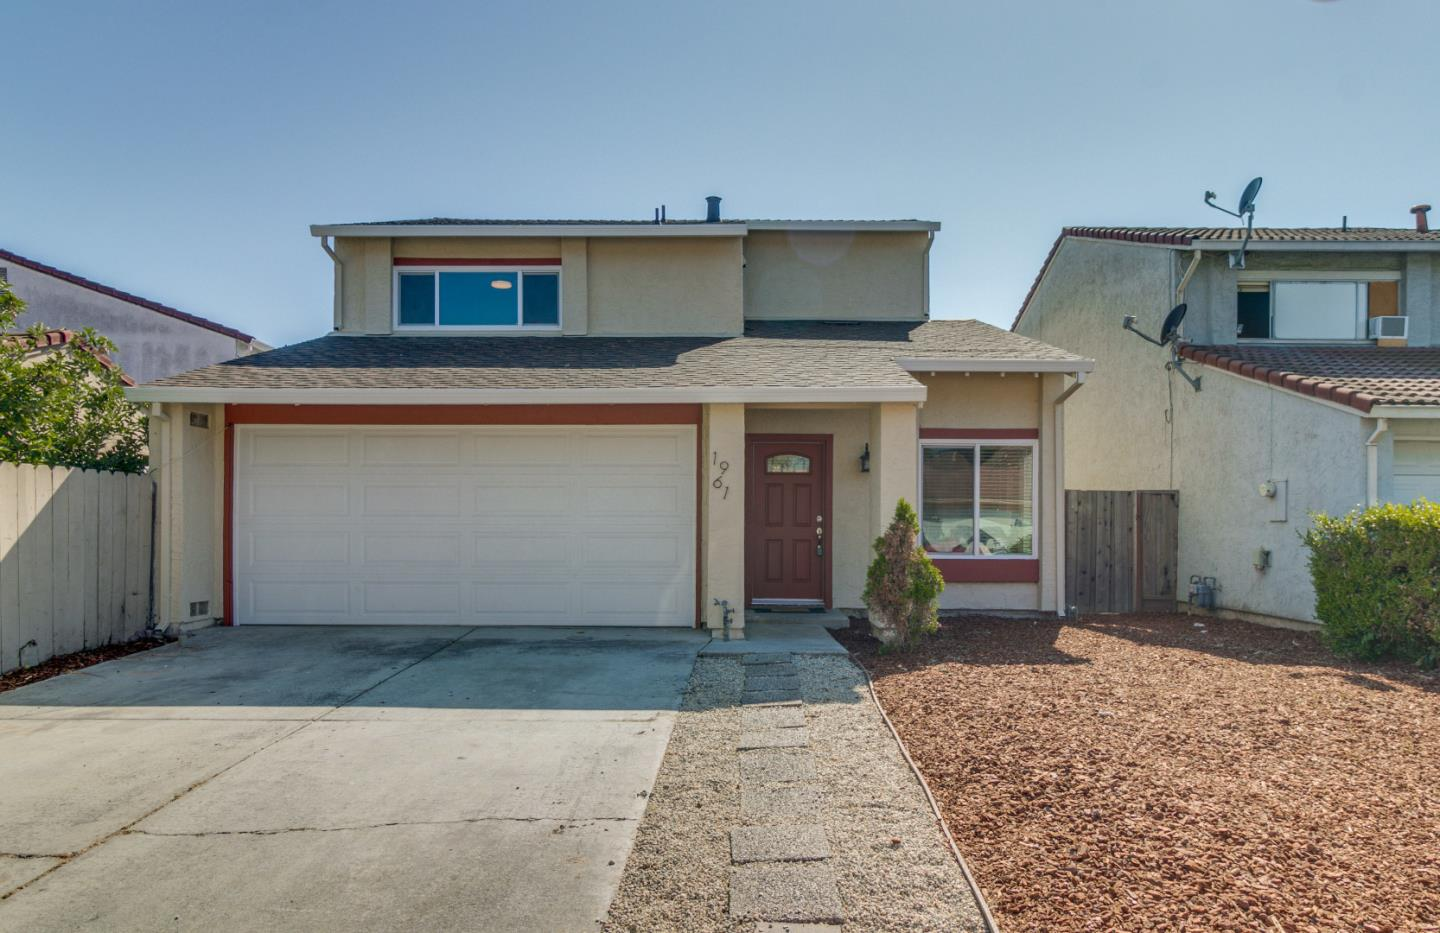 Detail Gallery Image 1 of 1 For 1961 Luby Dr, San Jose, CA 95133 - 4 Beds | 2/1 Baths